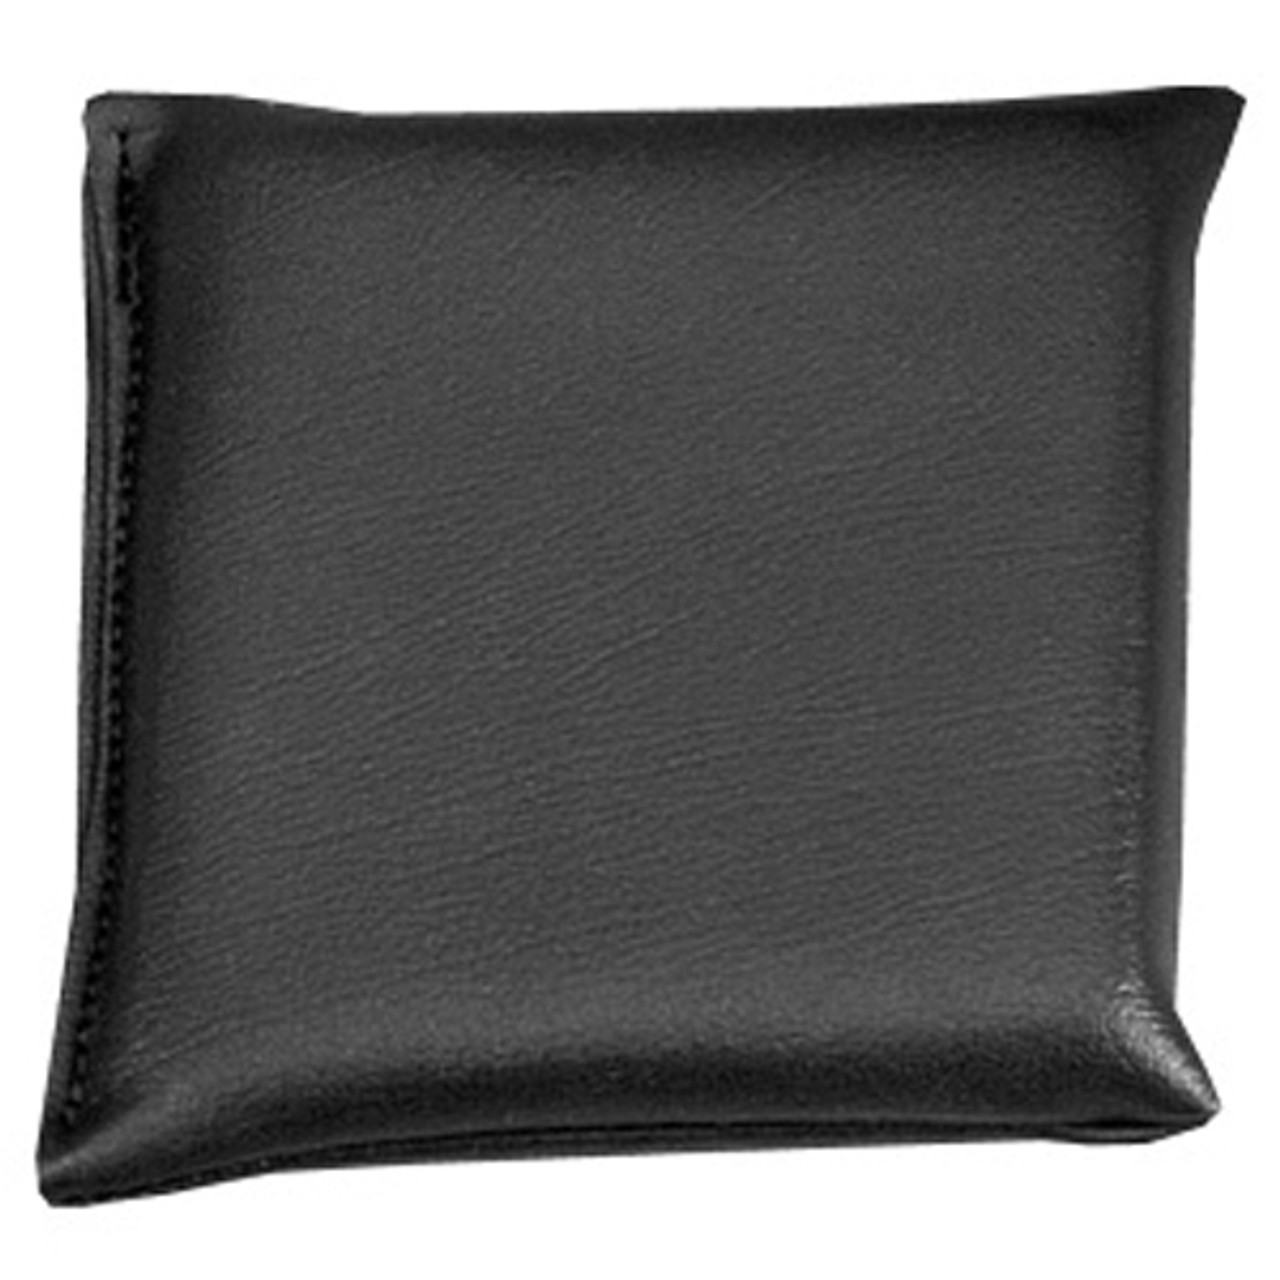 Double Thickness Alignment Pillow